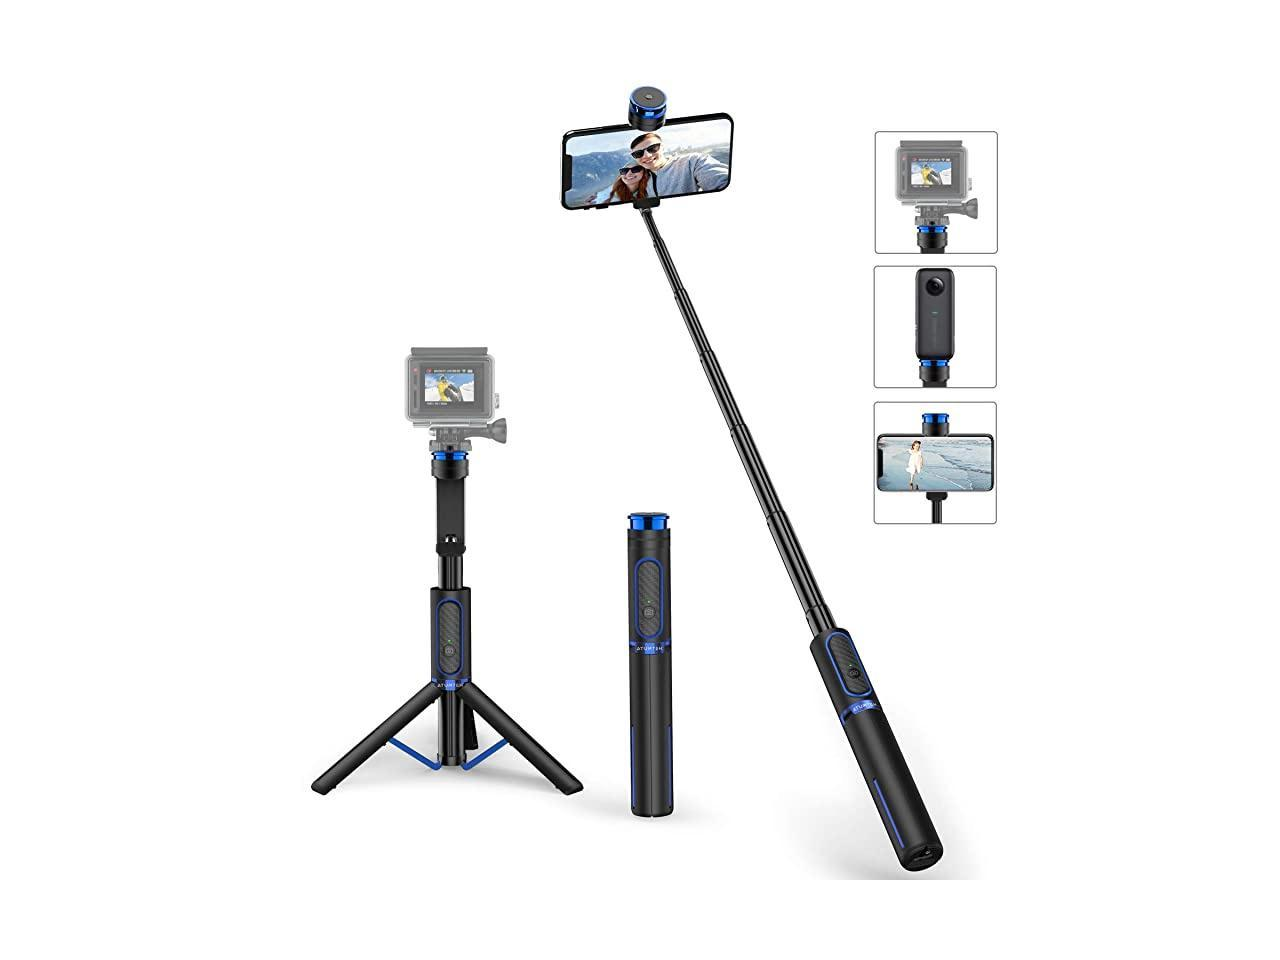 57-inch Phone Tripod Stand Travel Lightweight Android DSLR Compatible with iPhone Action Camera.Includes Wireless Remote Extendable Cell Phone Selfie Stick Cell Phone Holder and Gopro Adapter